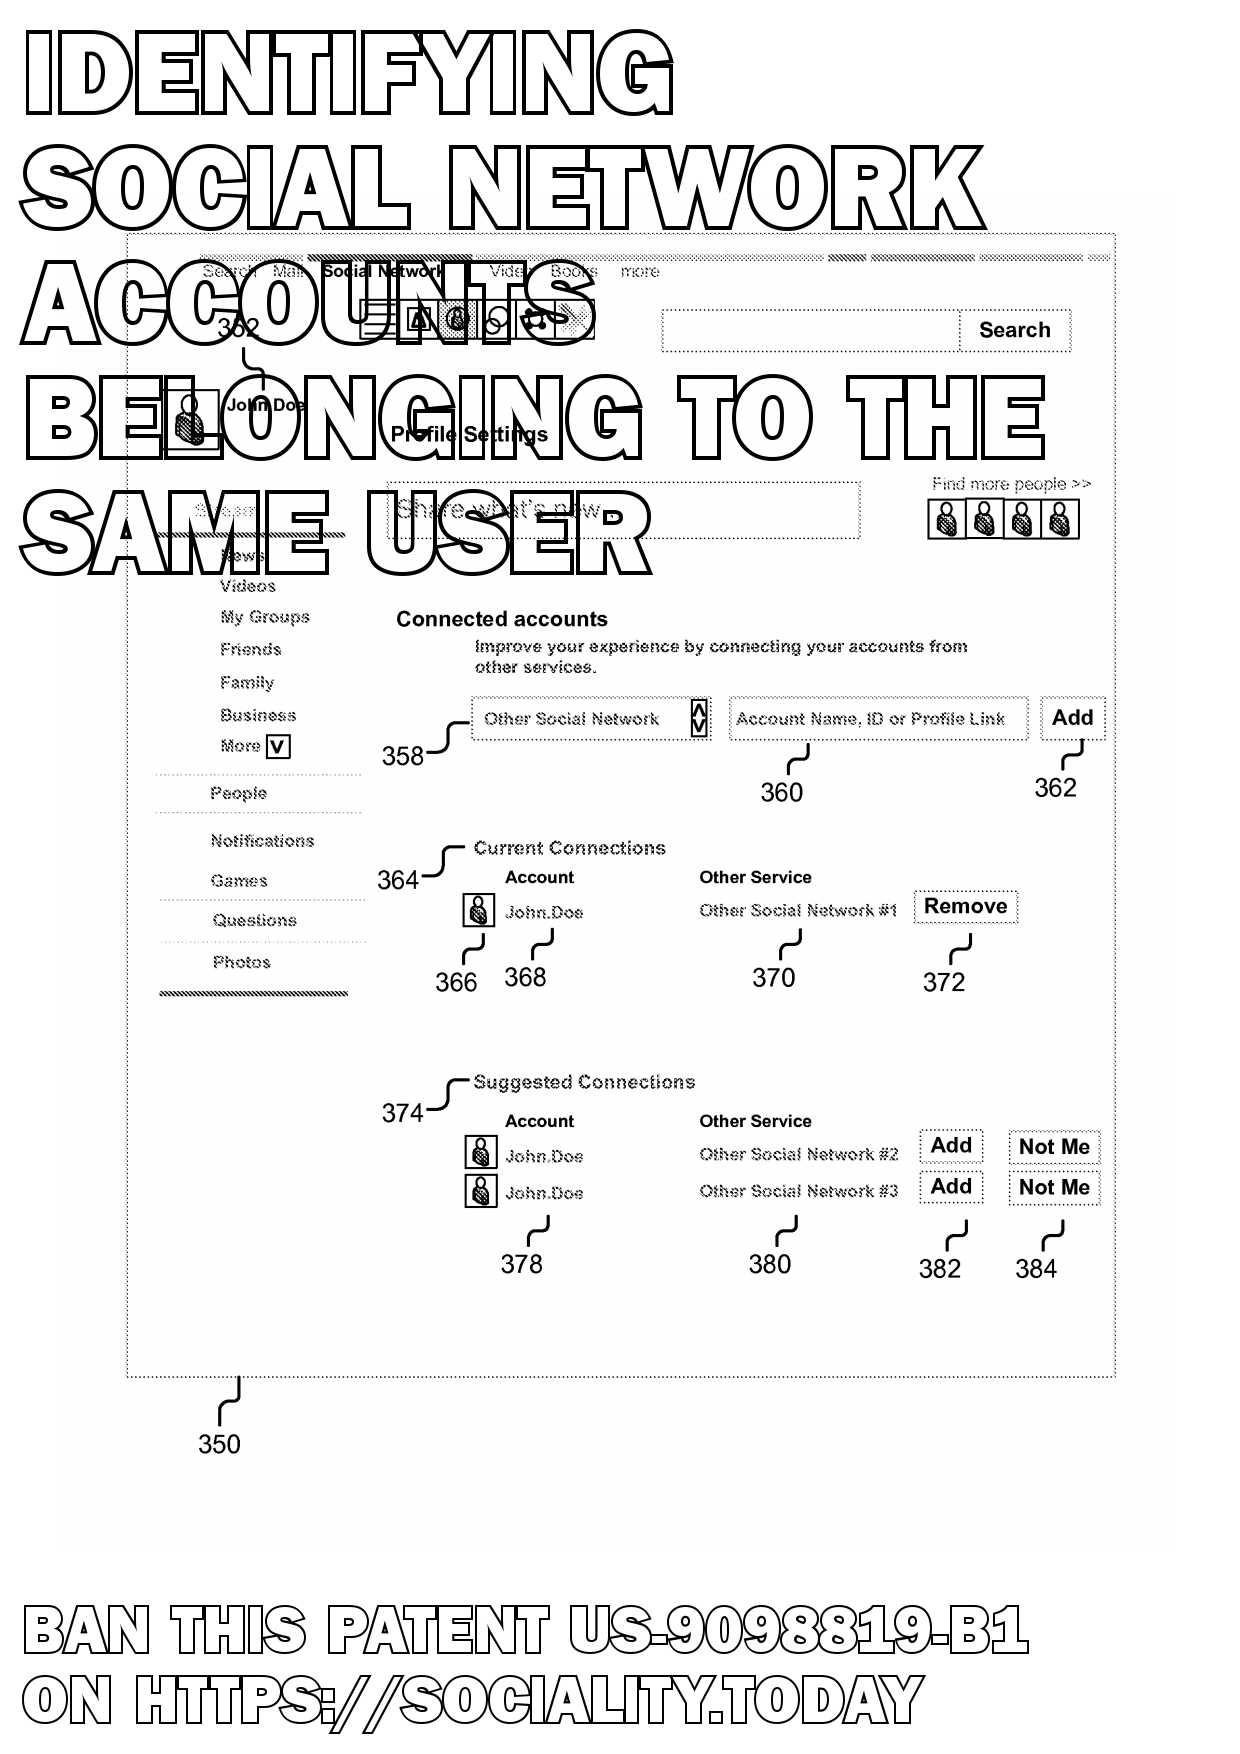 Identifying social network accounts belonging to the same user  - US-9098819-B1